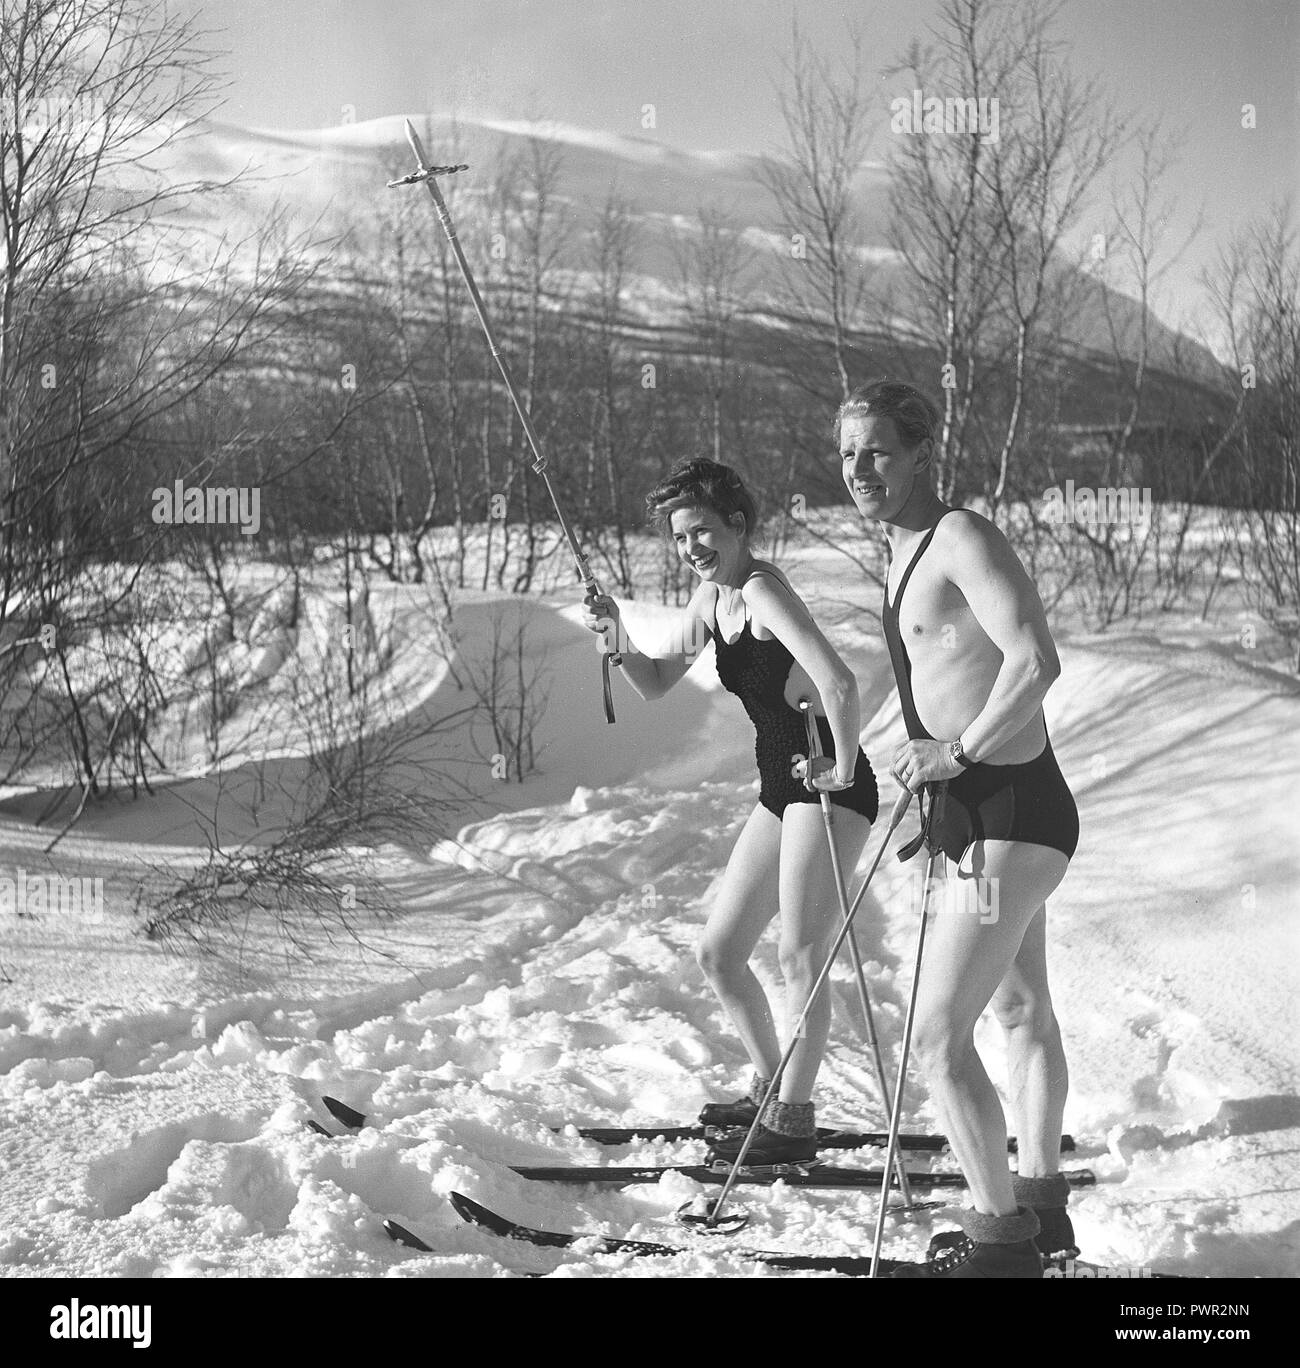 Winter in the 1940s. A young couple is enjoying their winter vacation, and they are wearing their swimsuits to get a nice tan from being outdoors in the warm sun. Sweden 1940s. Photo Kristoffersson Ref D116-1 - Stock Image